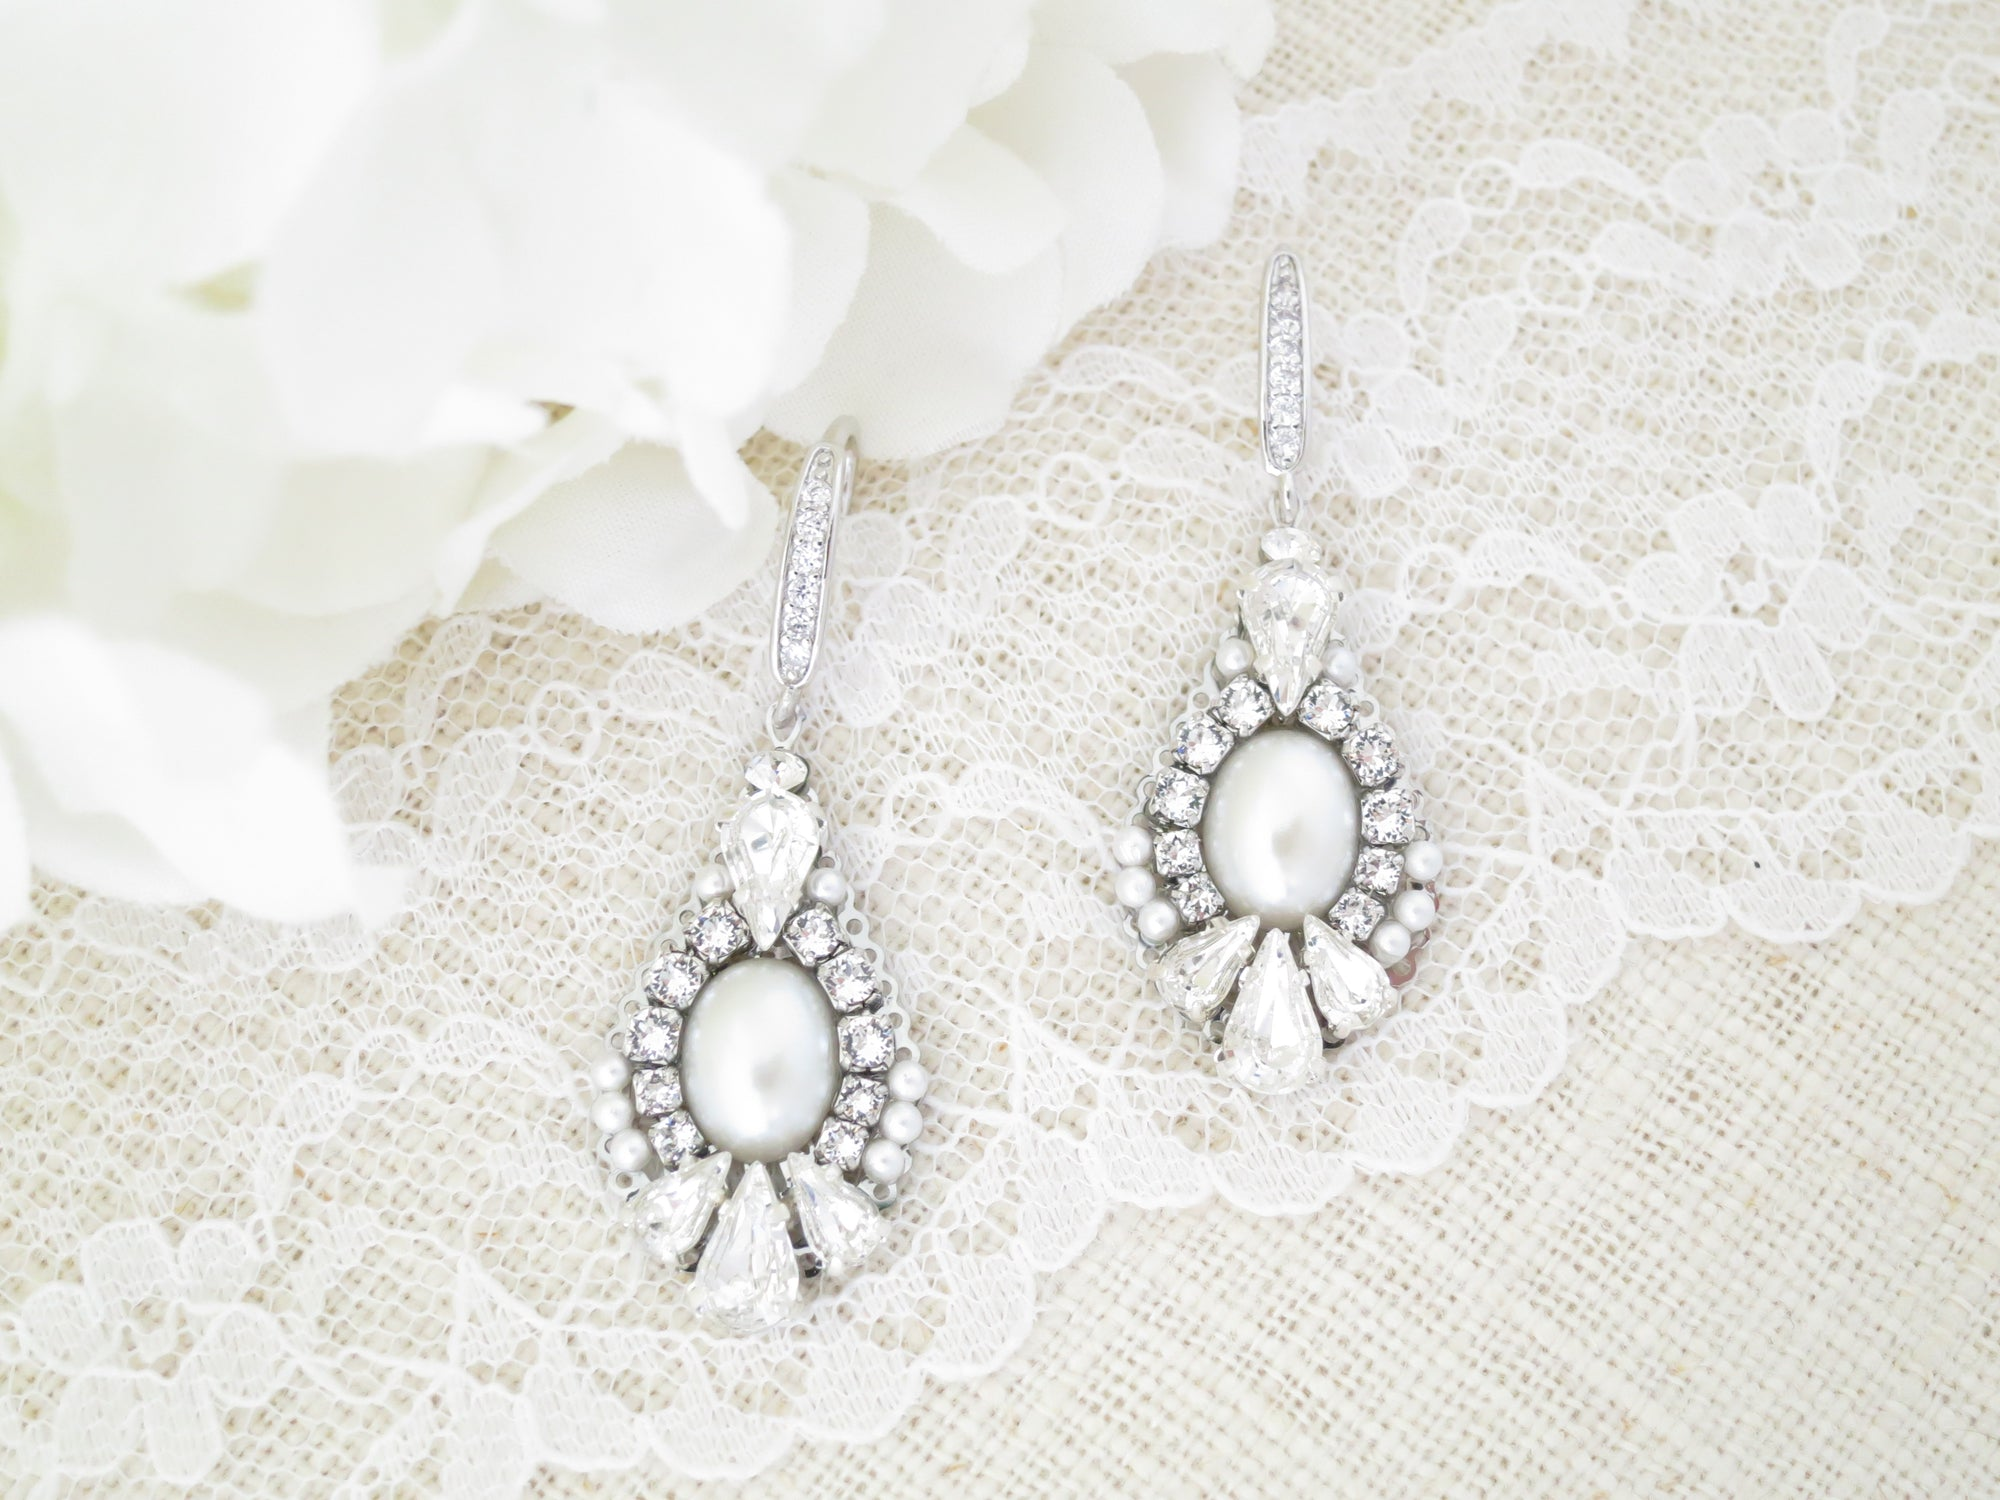 GWYNETH:  Vintage Teardrop Bridal Earrings - BlingBaddaBoom - Minimalist, Vintage, Modern Wedding and Bridal Jewelry